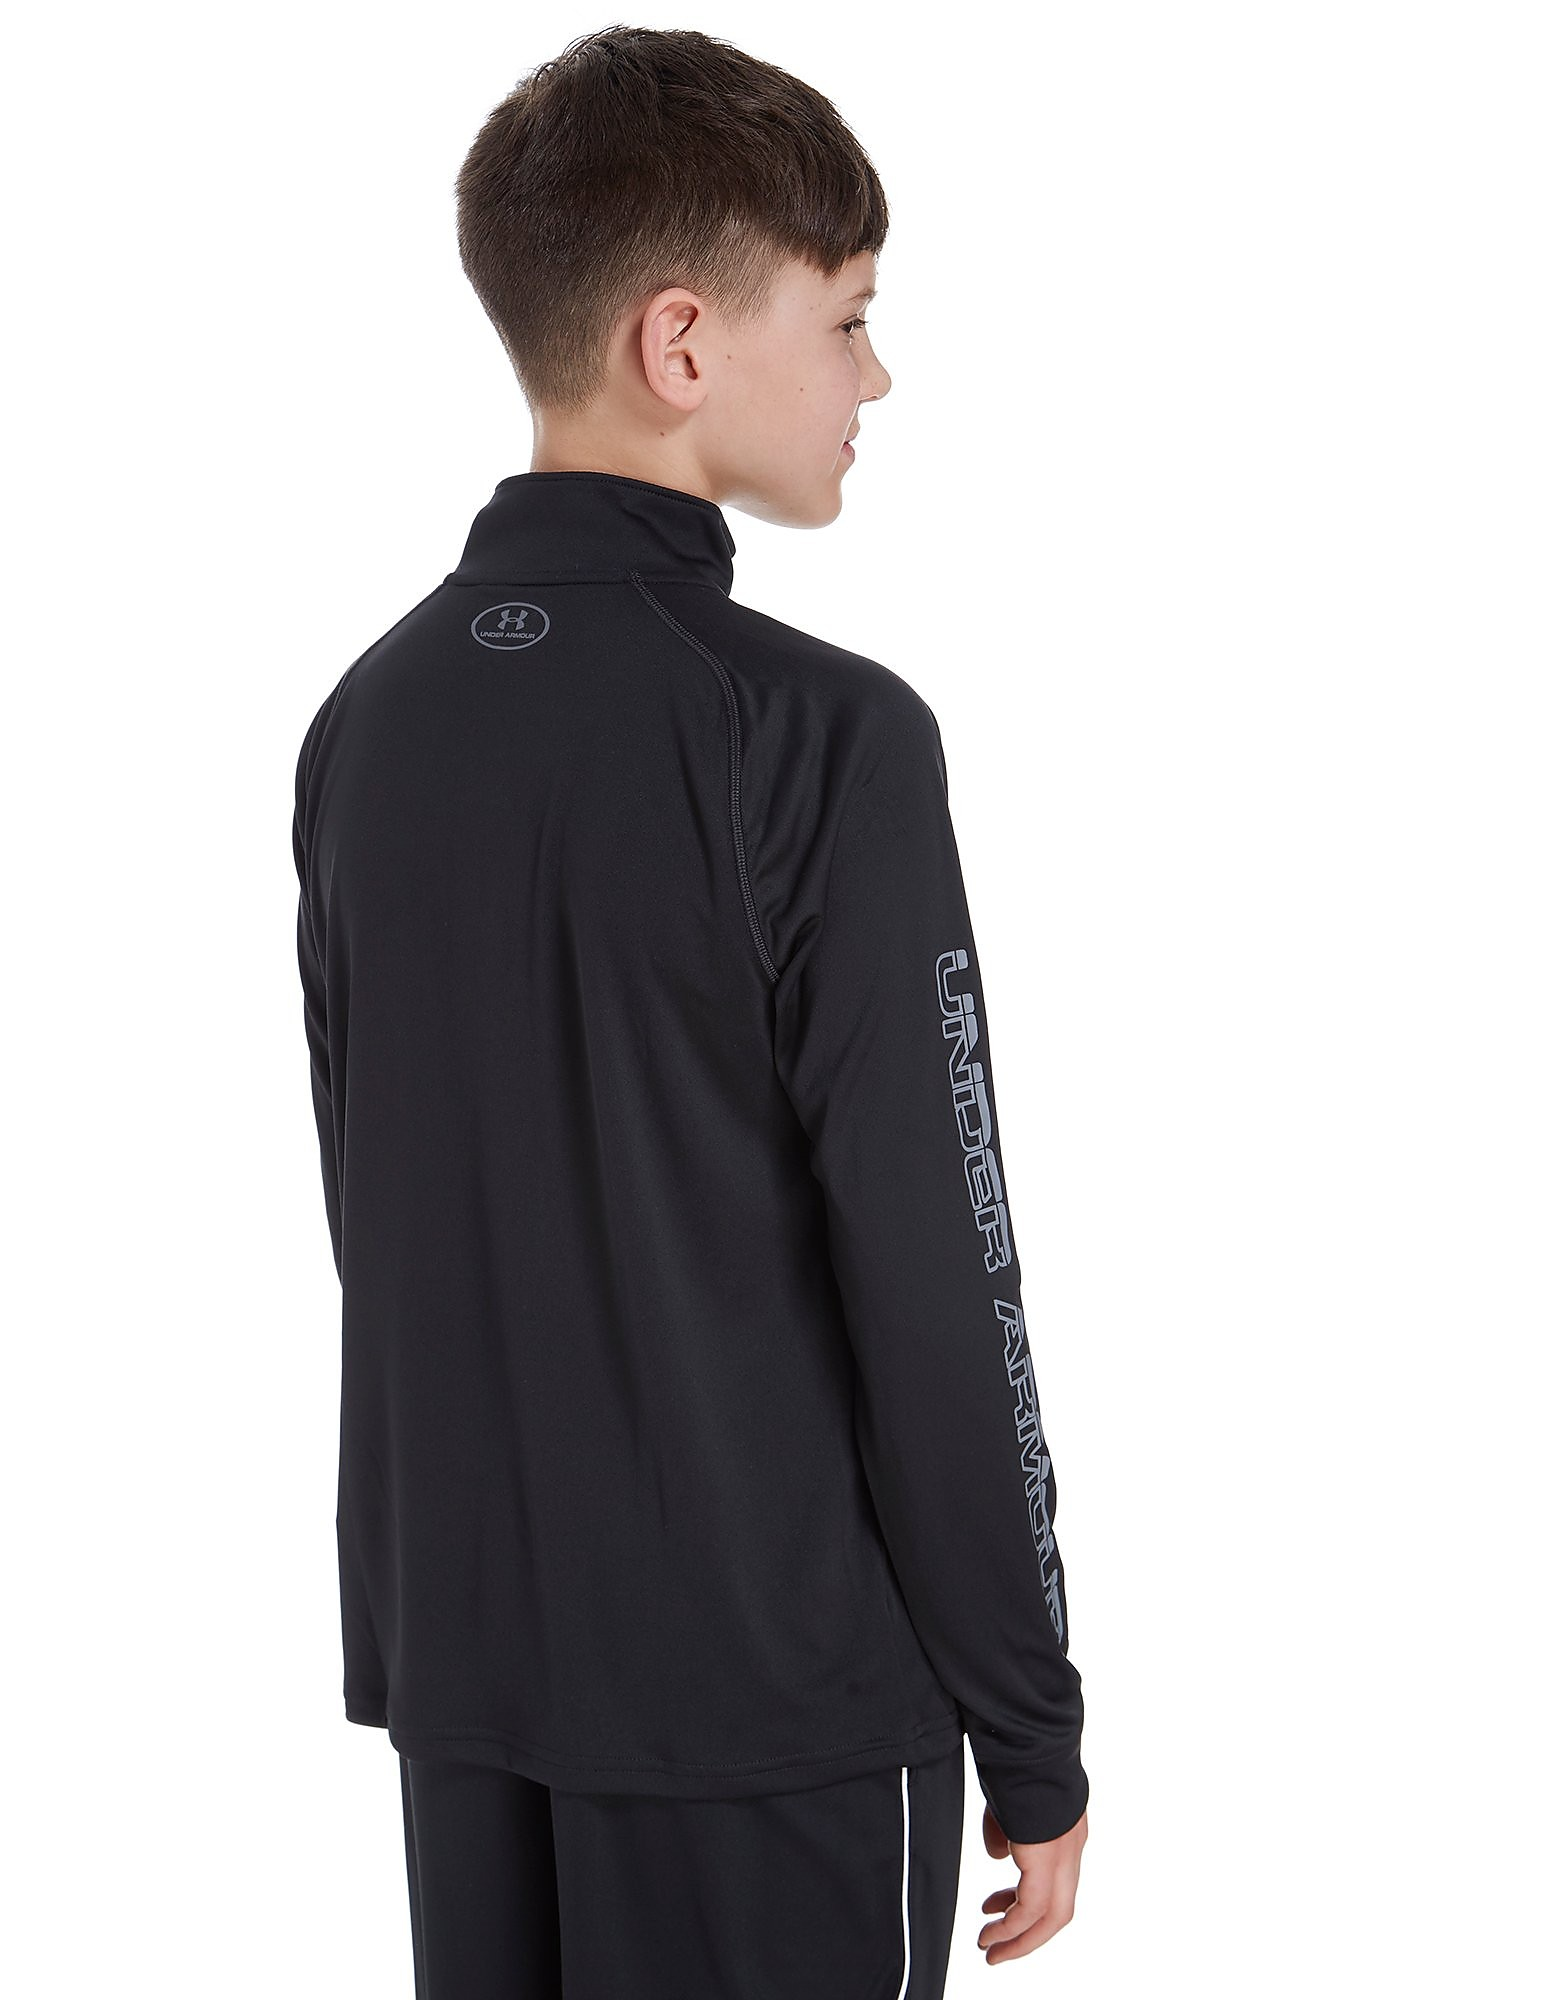 Under Armour Tech Blocked 1/4 Zip Top Junior